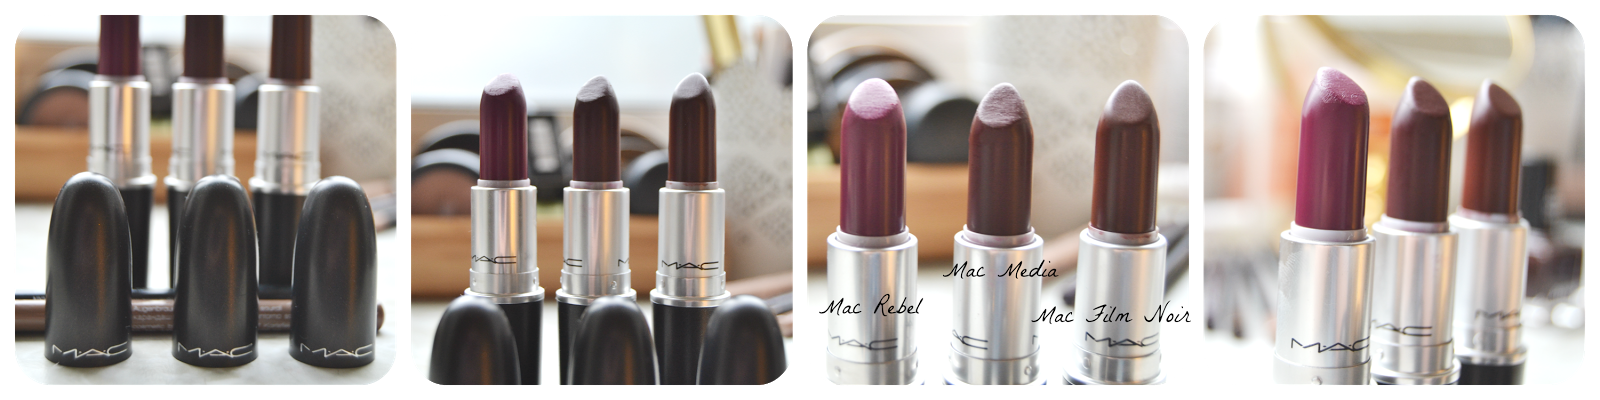 swatch mac cosmetics rebel media film noir